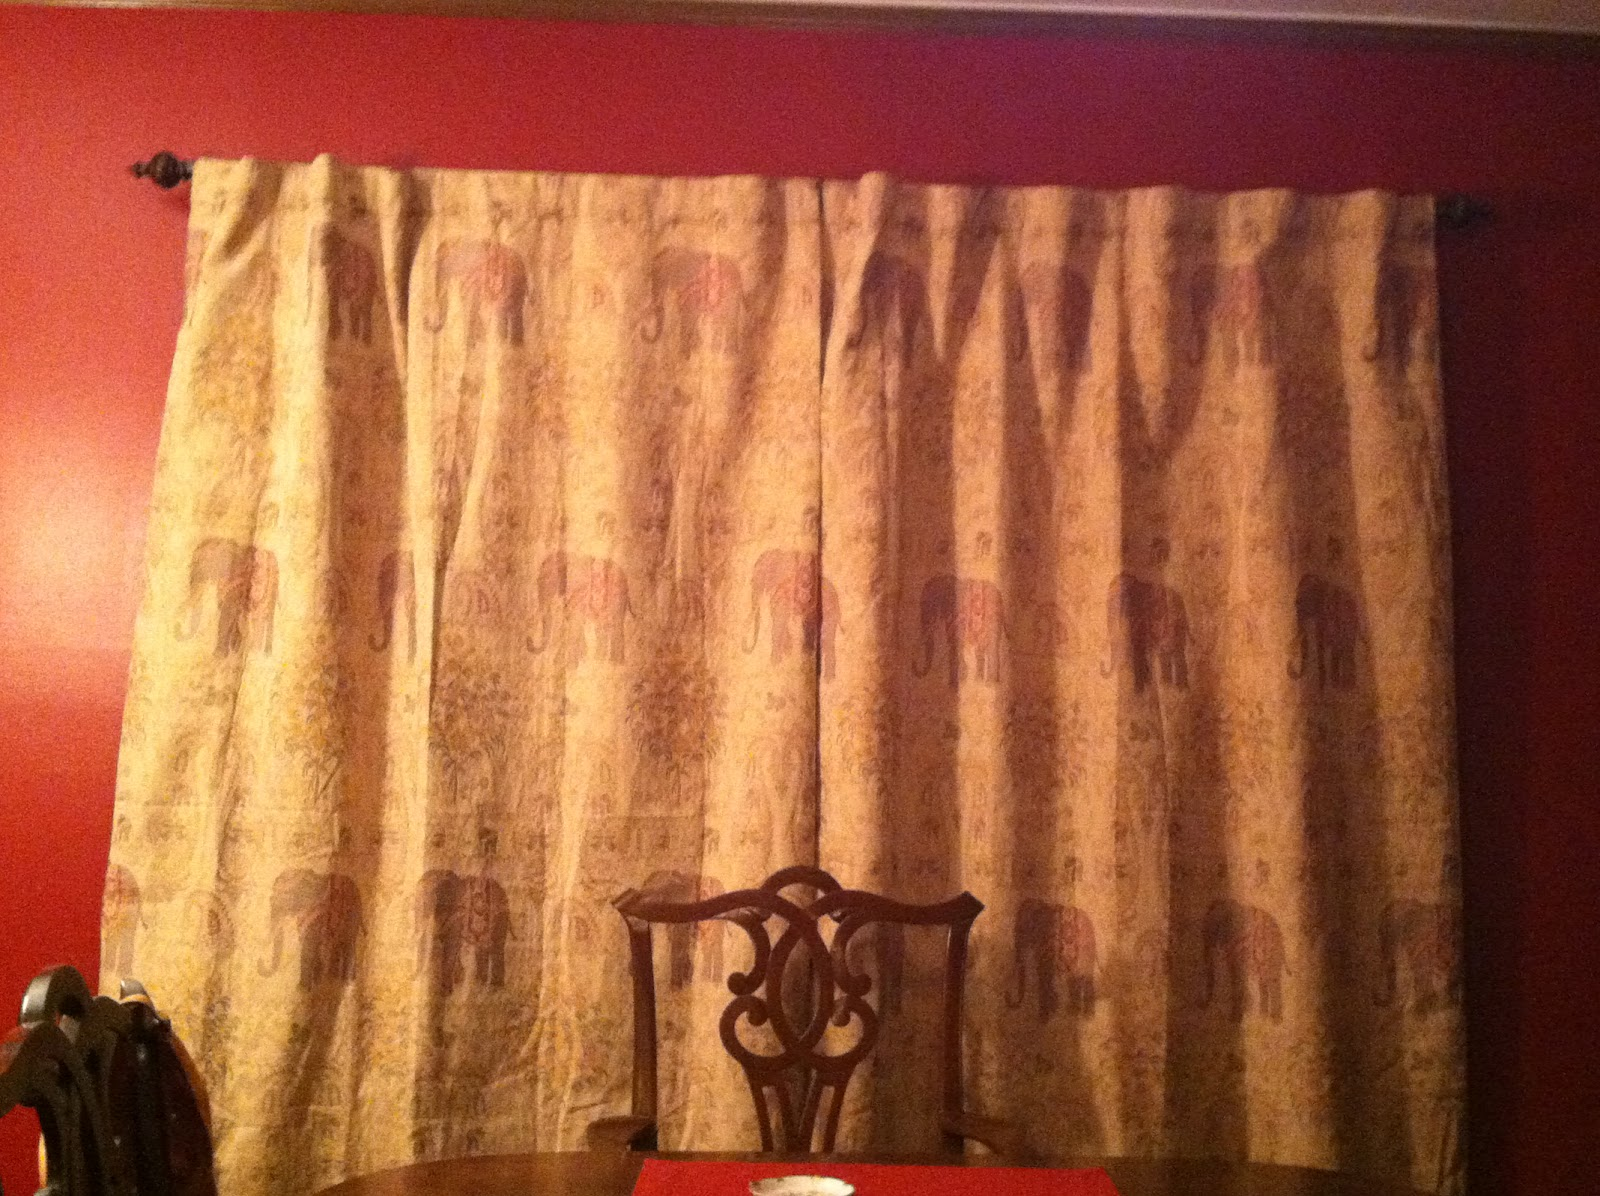 Ha ha hanging curtains interior design - Ha In The Kitchen I Got The Rest Of The Things That Needed Hanging Hung That Included My Awesome Hooks By The Back Door